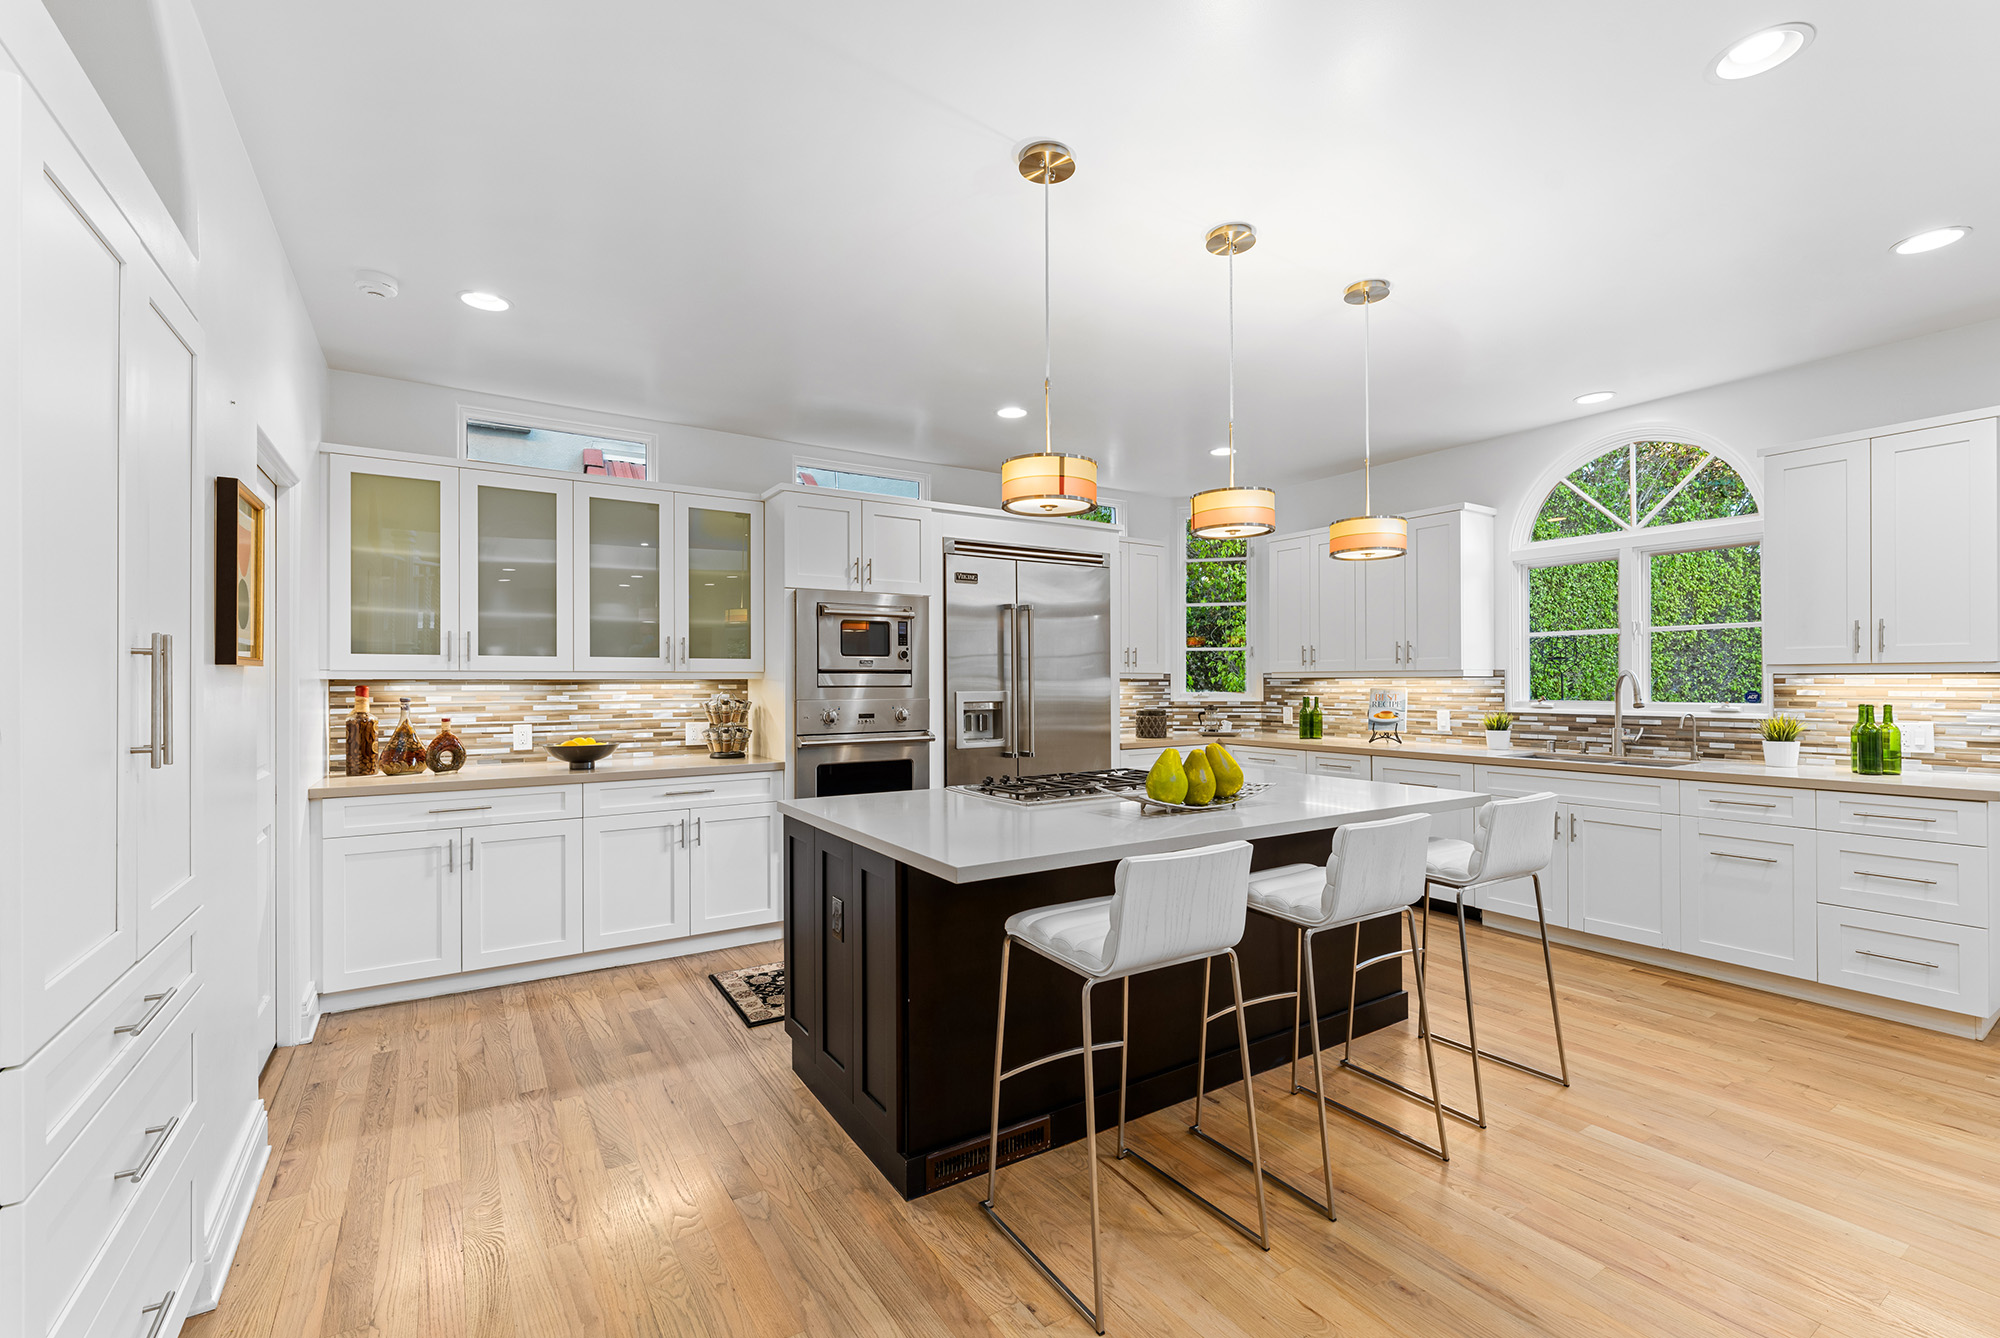 cabinets in a luxury kitchen santa monica house 333 22nd St